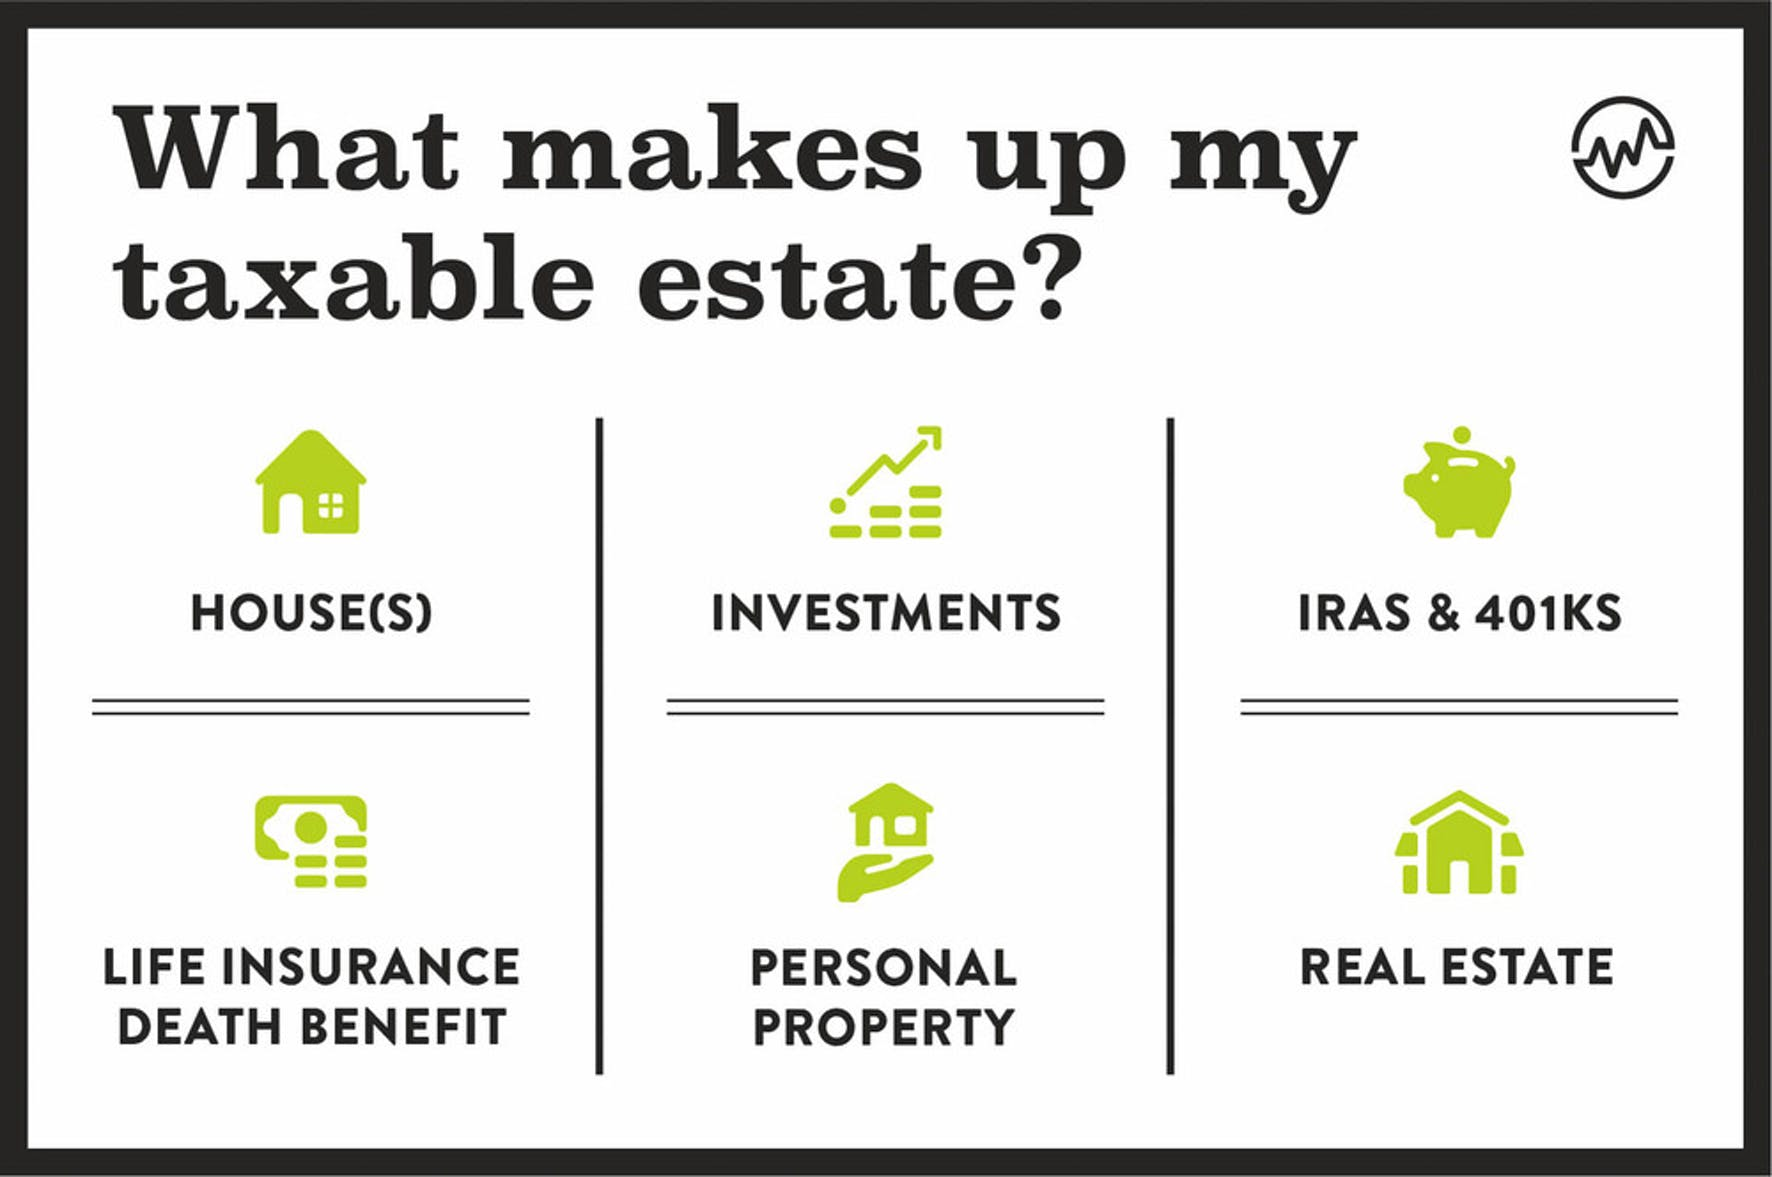 Inheritance Tax: What makes up my taxable estate?